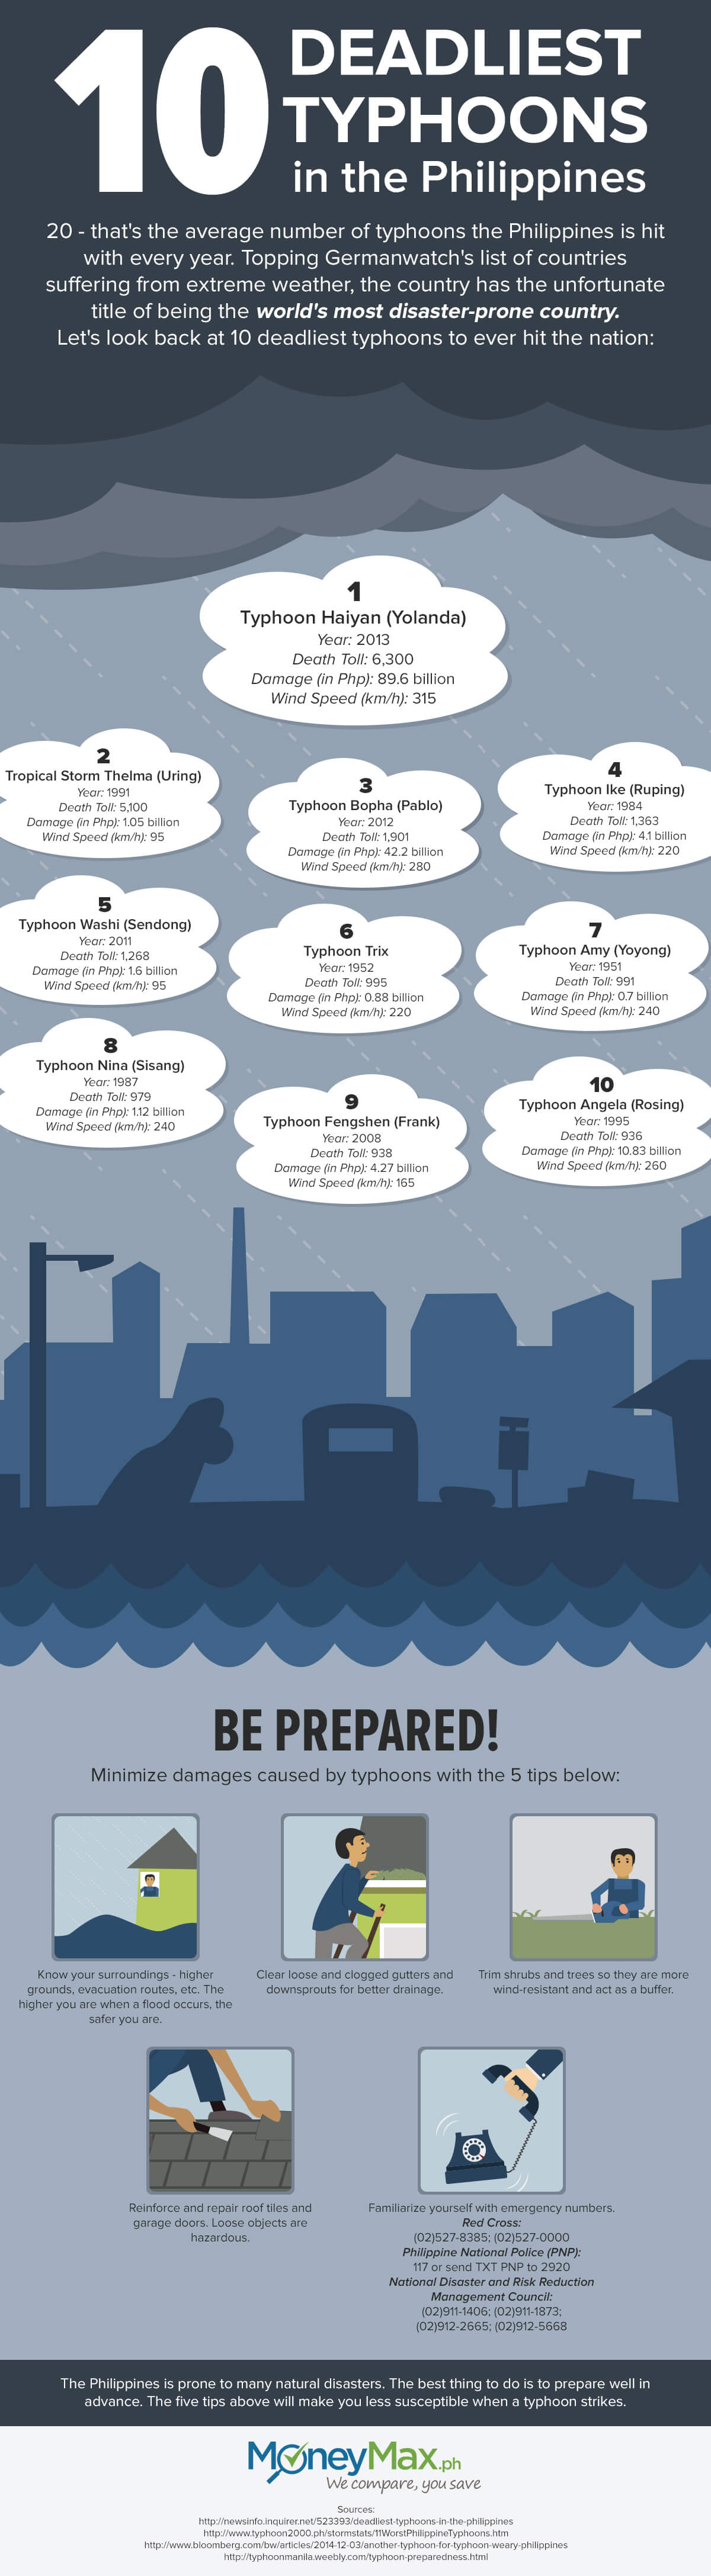 10 deadliest typhoons in the Philippines infographic